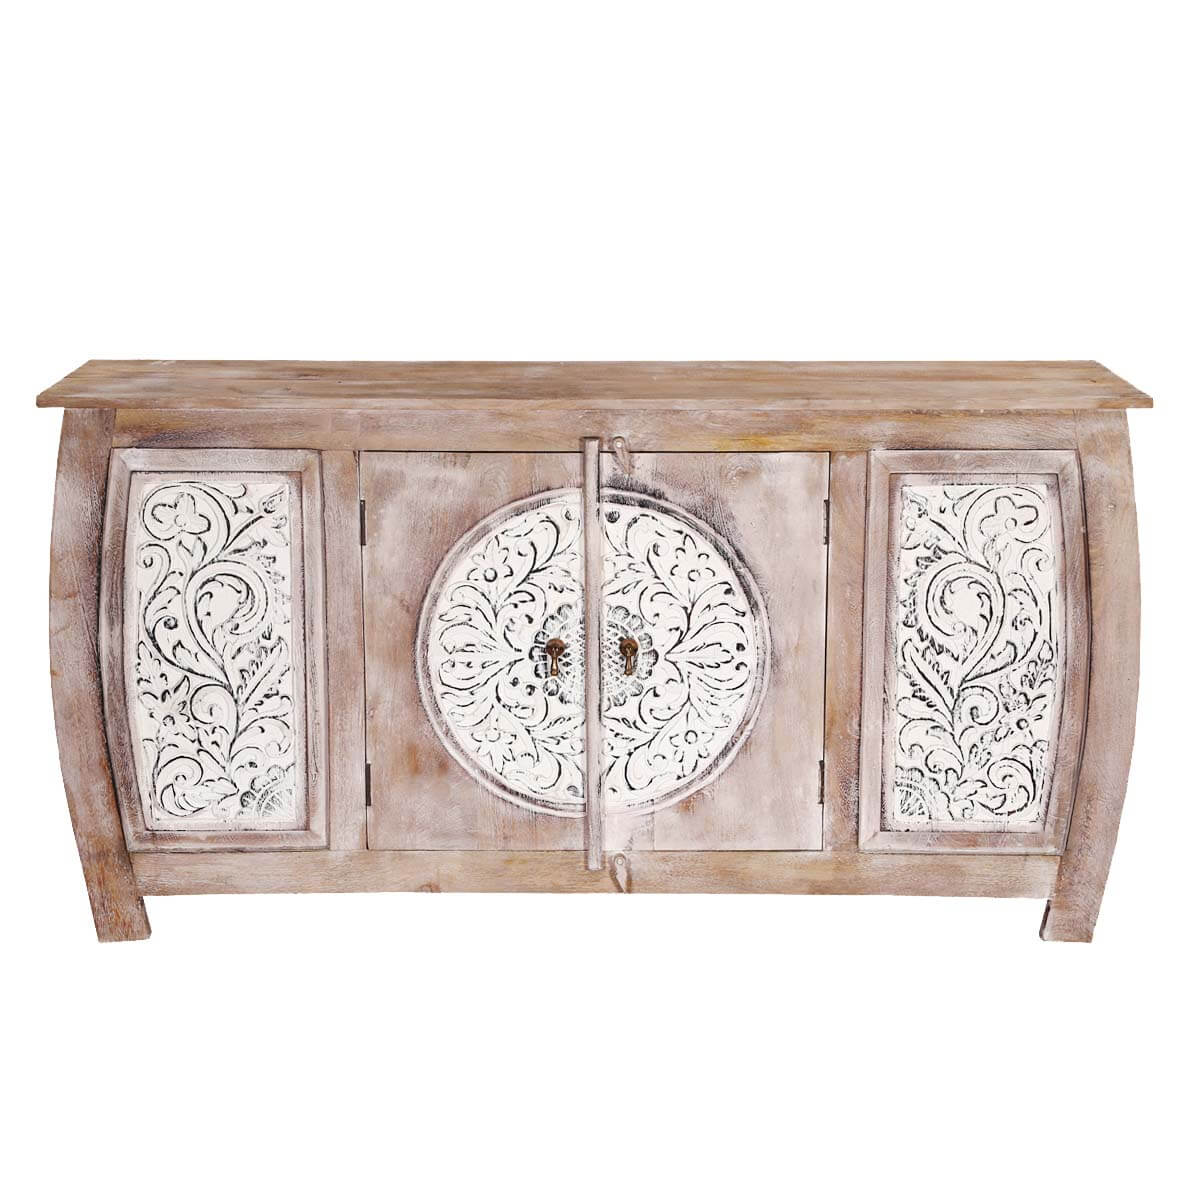 Orleans White Floral Motif Doors Rustic Accent Sideboard